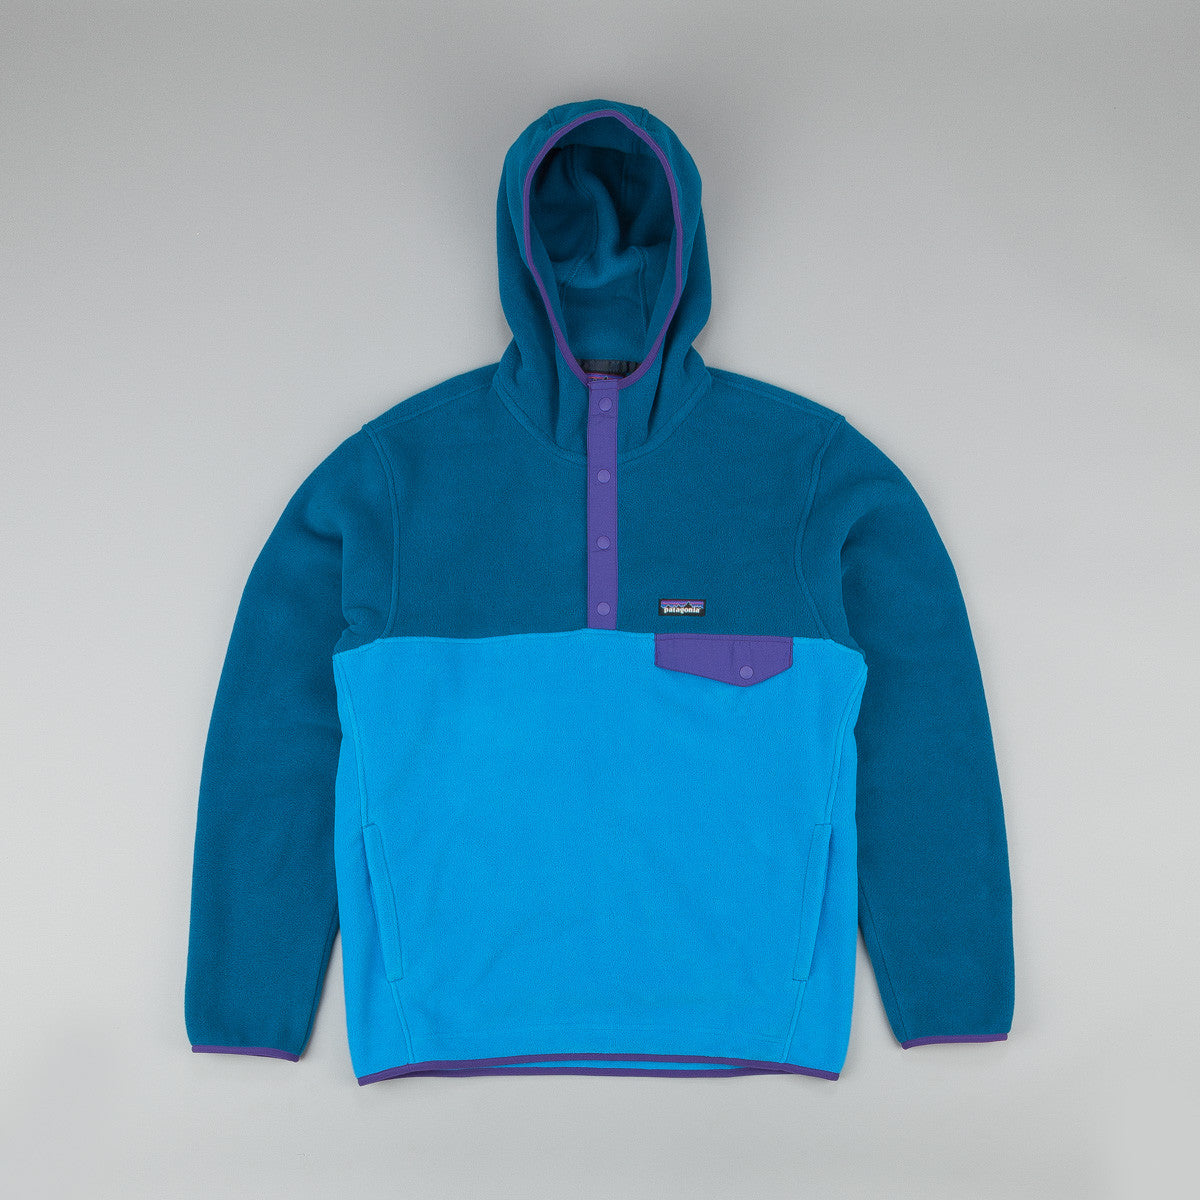 Patagonia Synchilla Snap-T Hooded Fleece